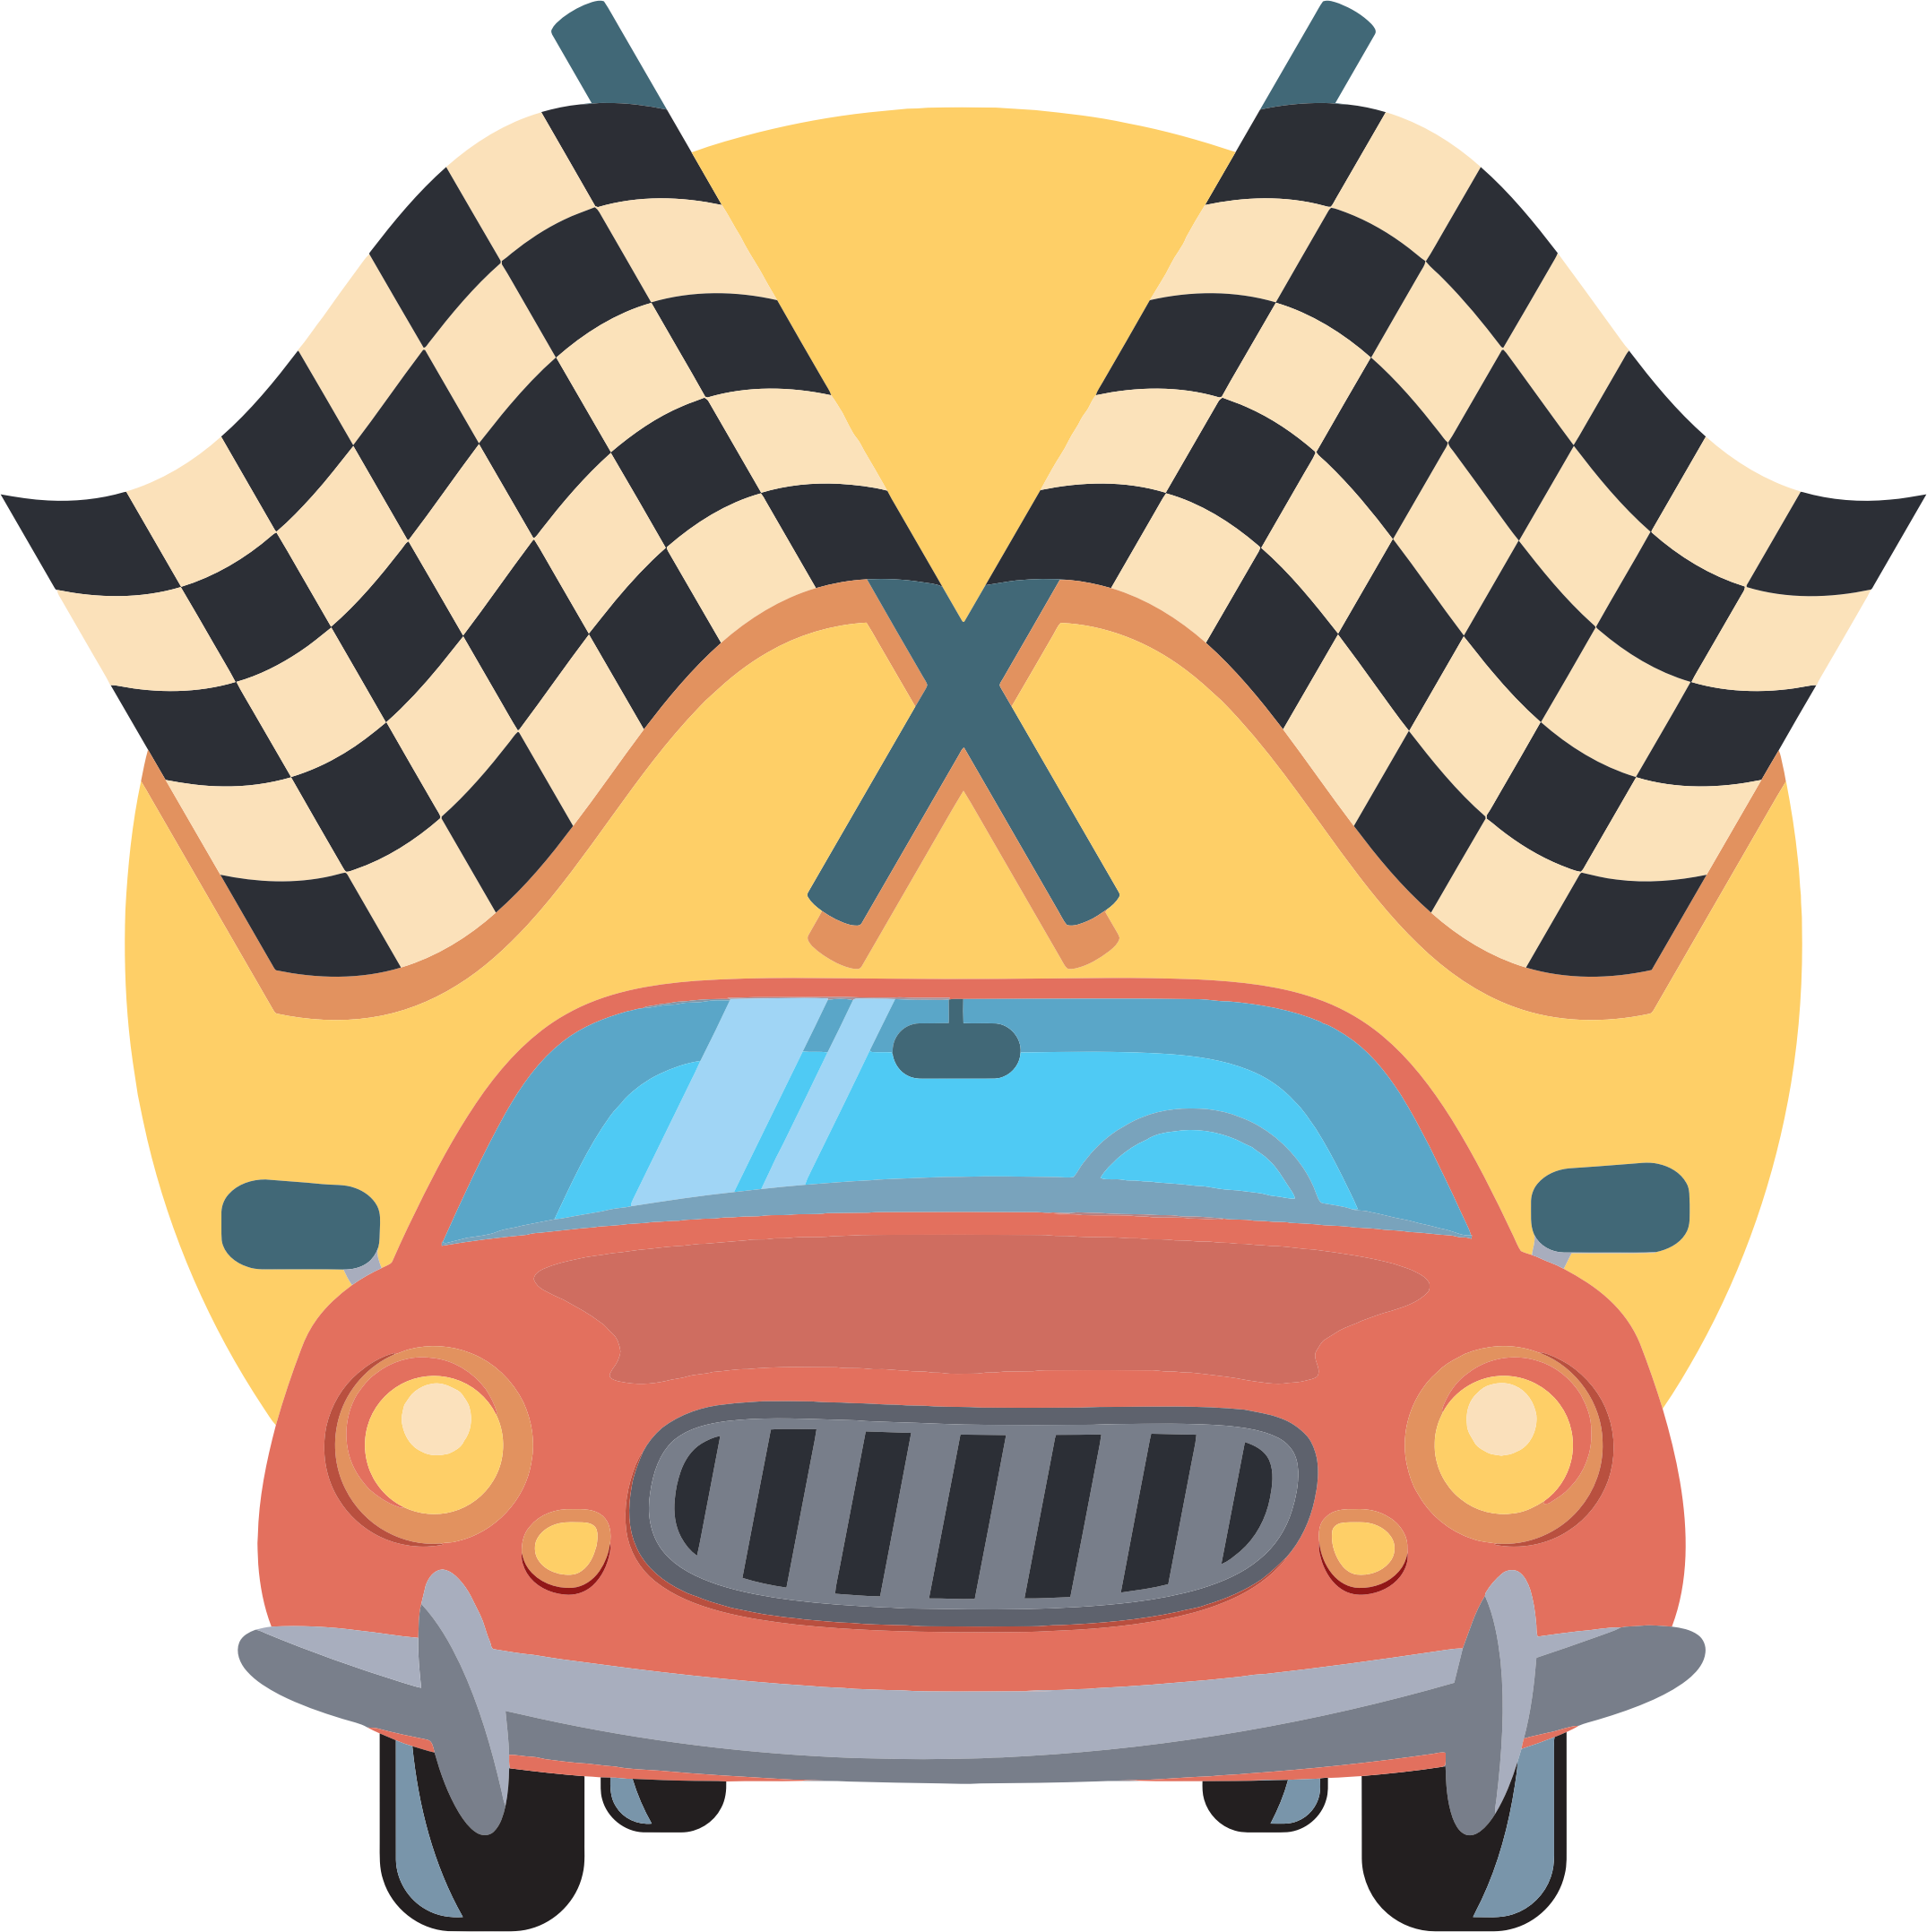 Race clipart vehicle. Car and racing flags